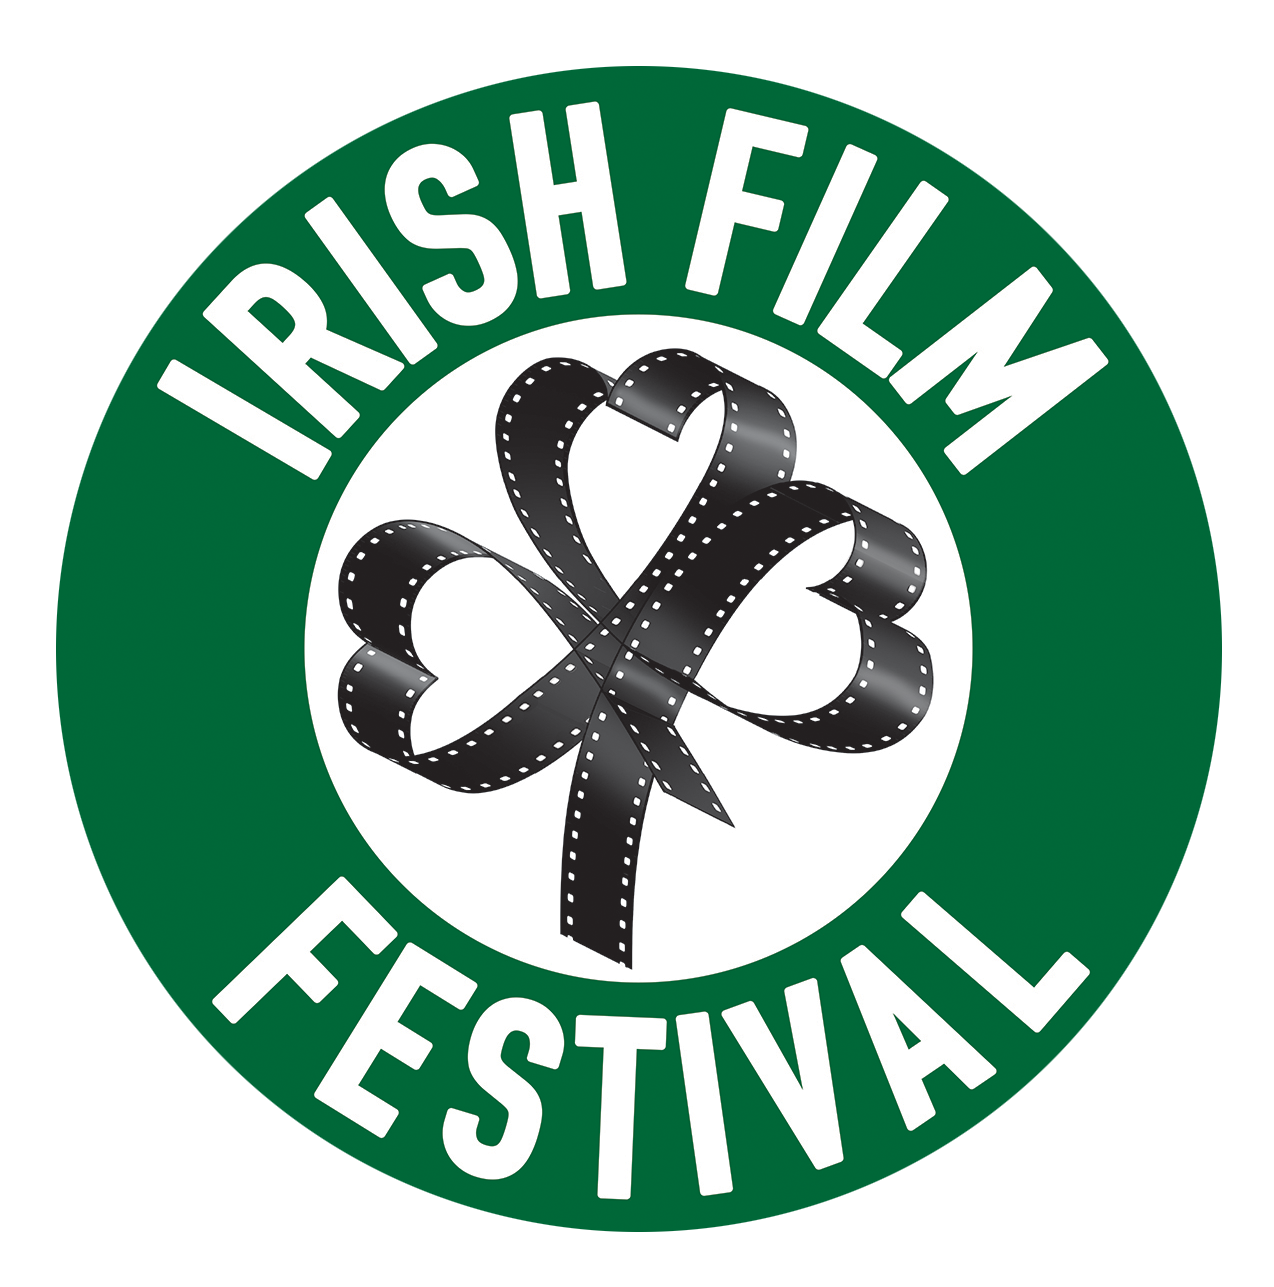 irish film festival logo